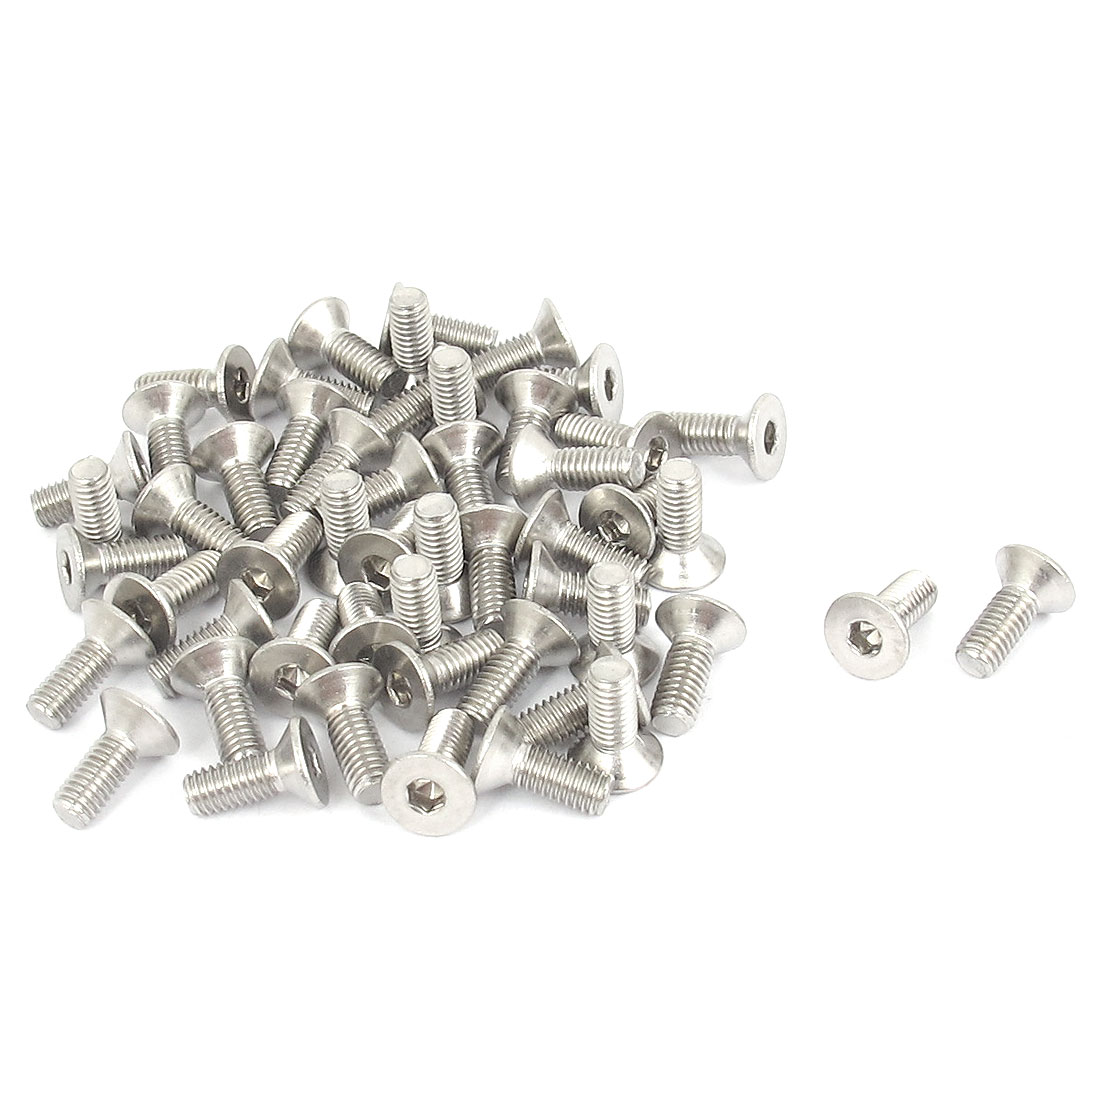 M3 x 8mm Metric 304 Stainless Steel Hex Socket Countersunk Flat Head Screw Bolts 50pcs